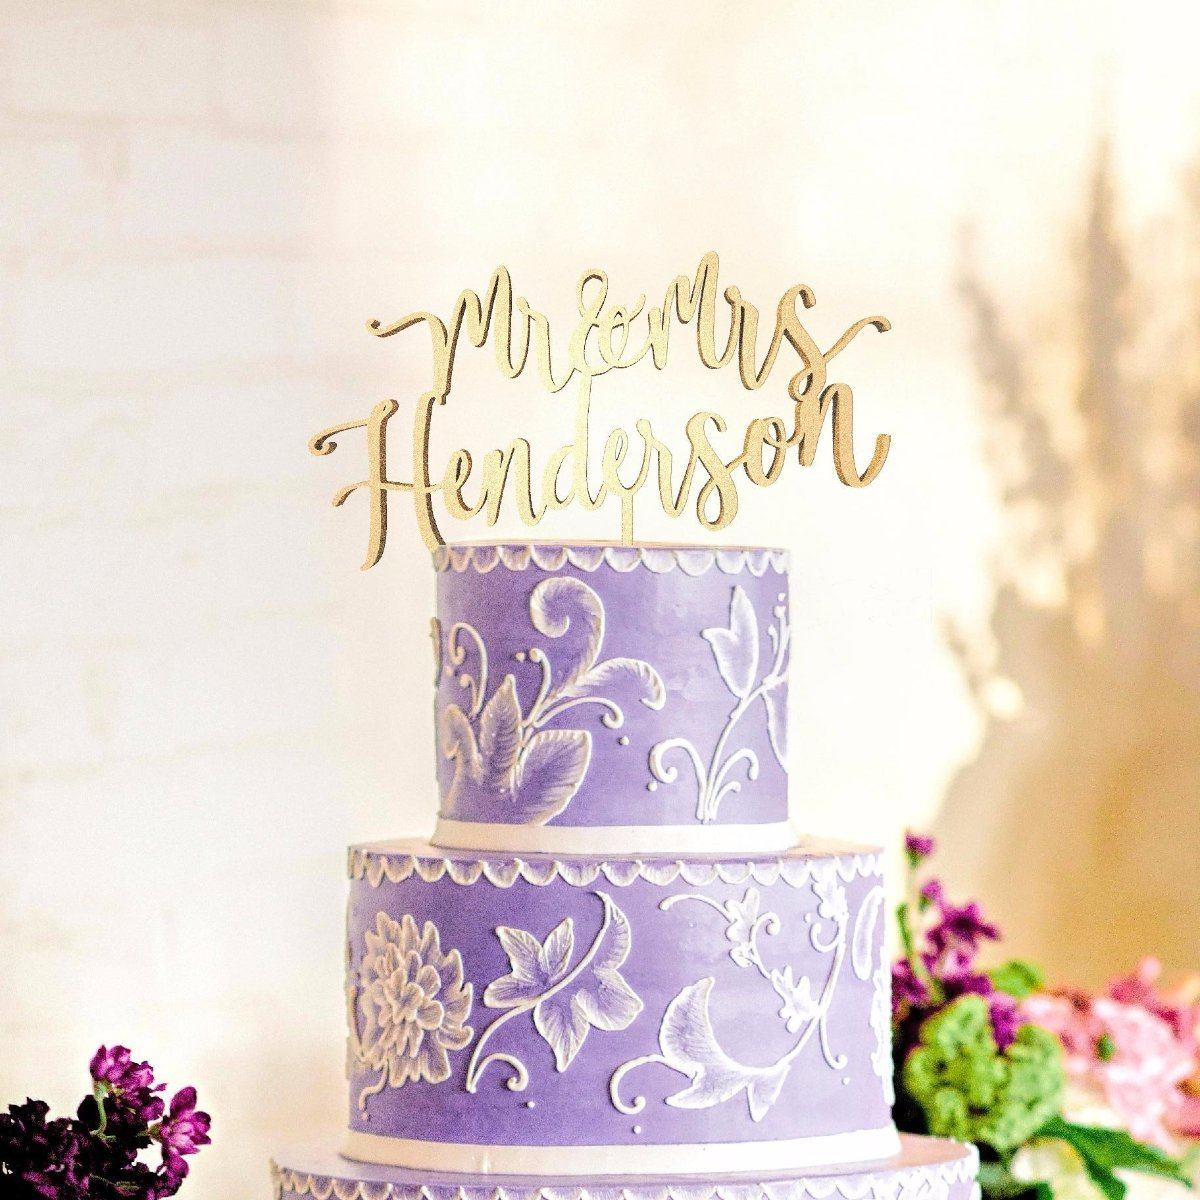 Personalised wedding cake topper mr and mrs henderson globalwedding personalised wedding cake topper mr and mrs henderson junglespirit Choice Image